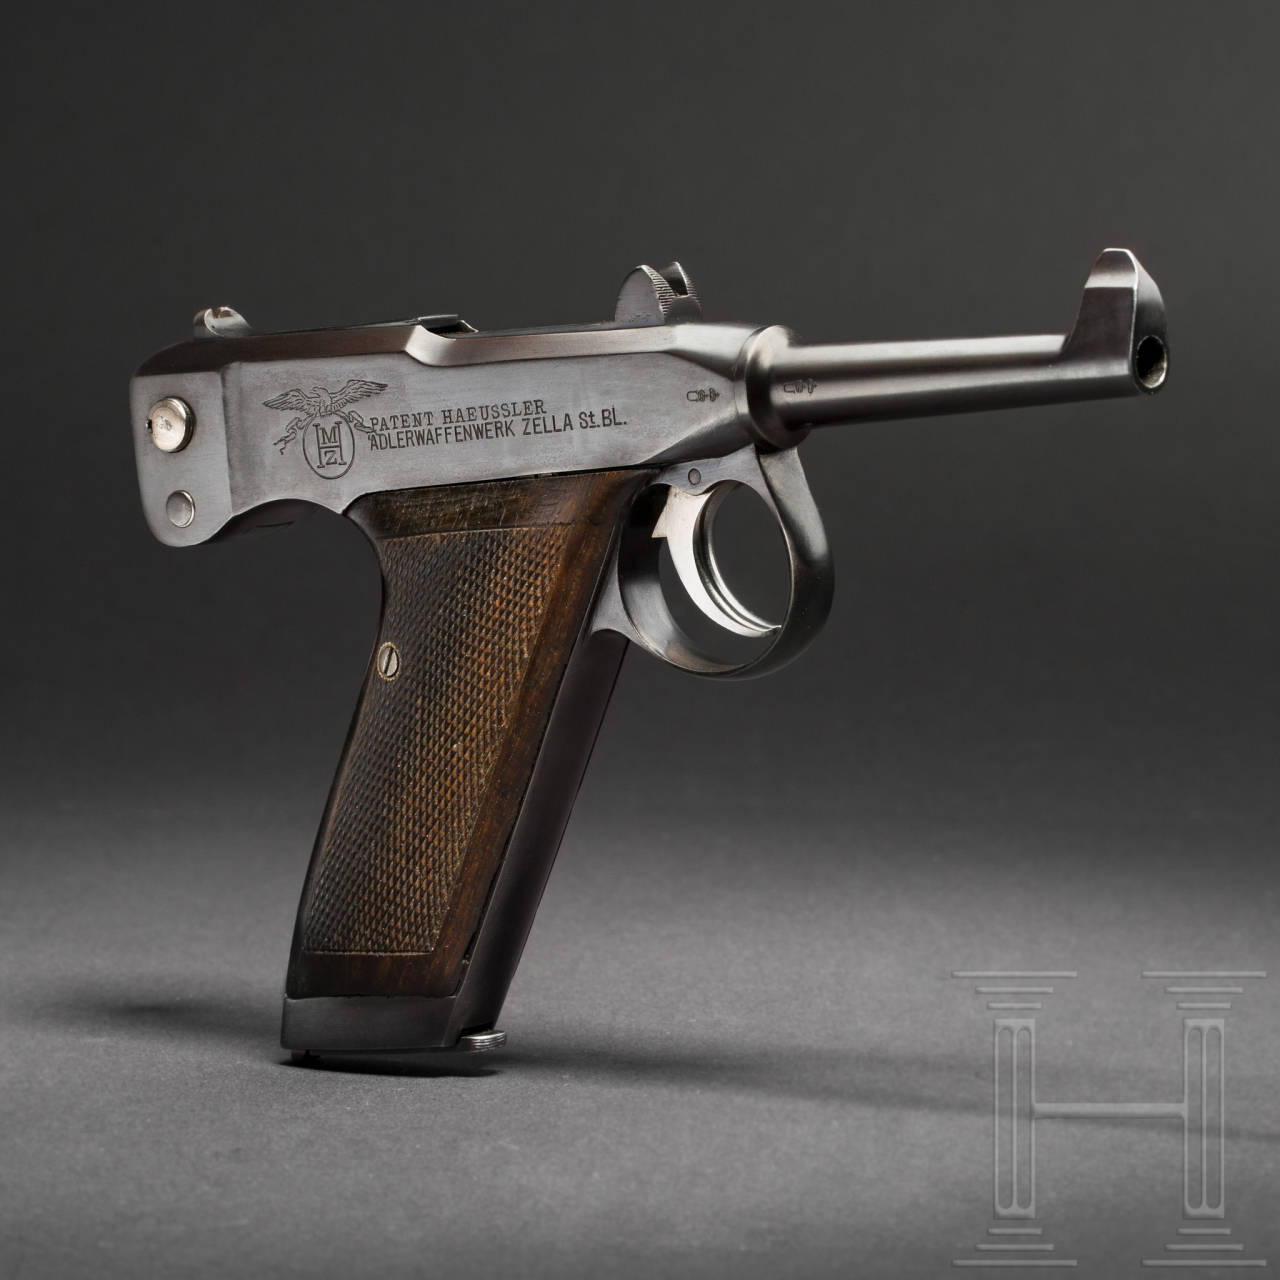 A self-loading Adler pistol, circa 1906/07